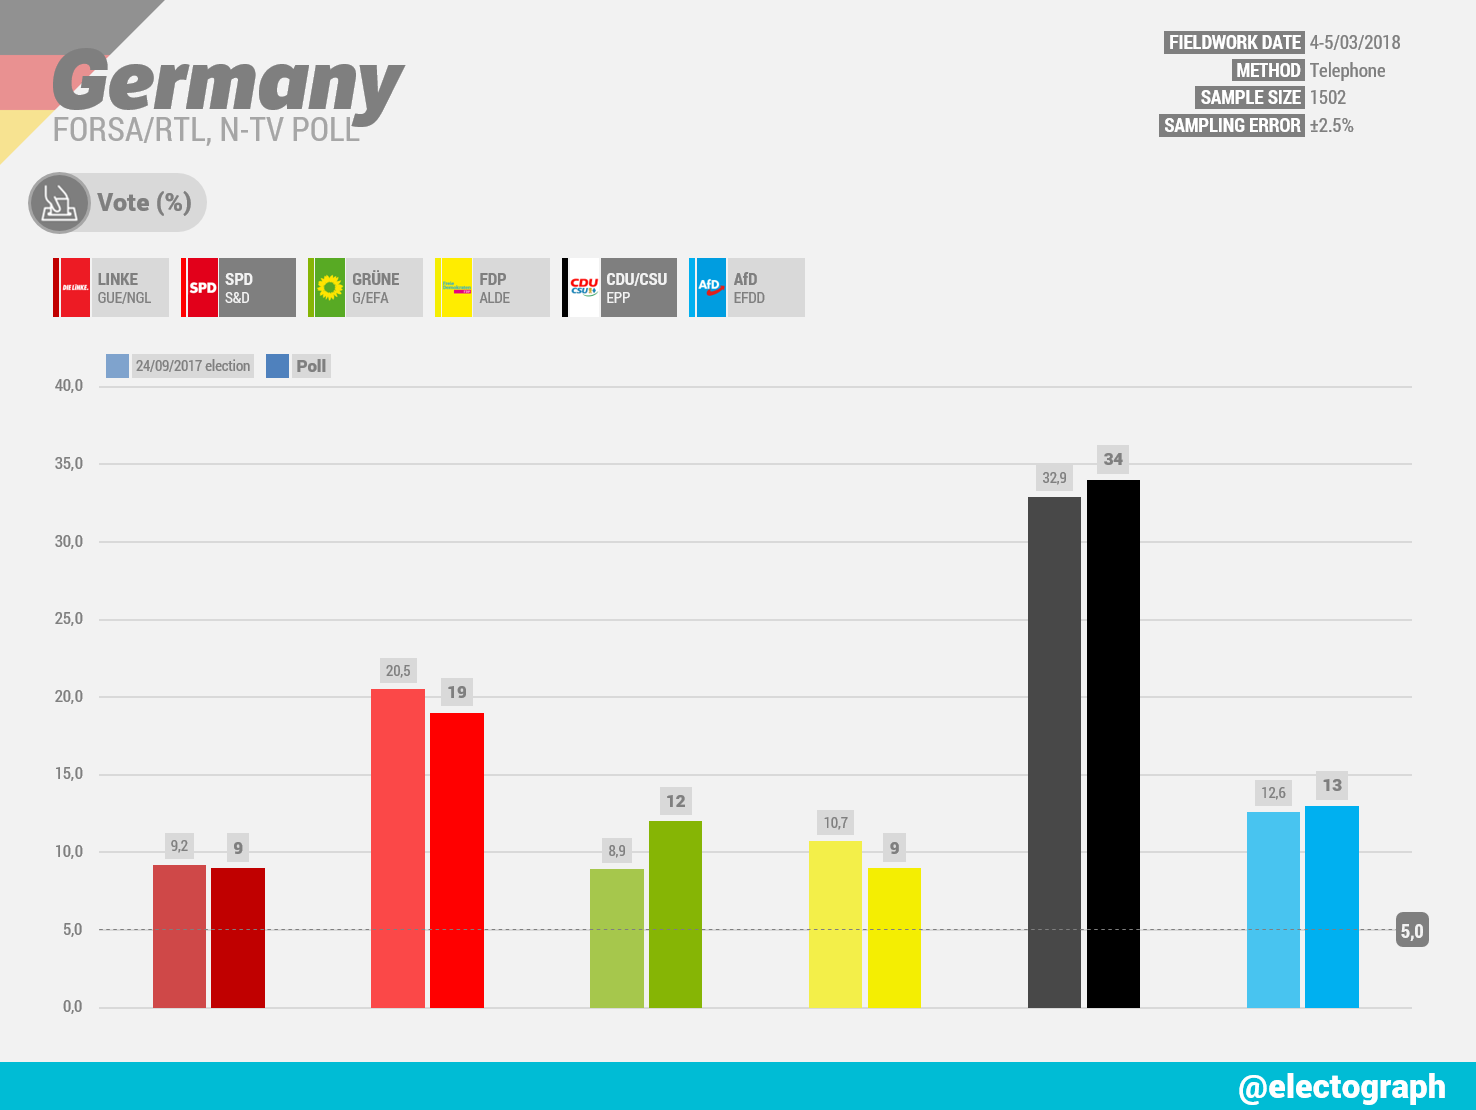 GERMANY Forsa poll chart for RTL and n-tv, March 2018